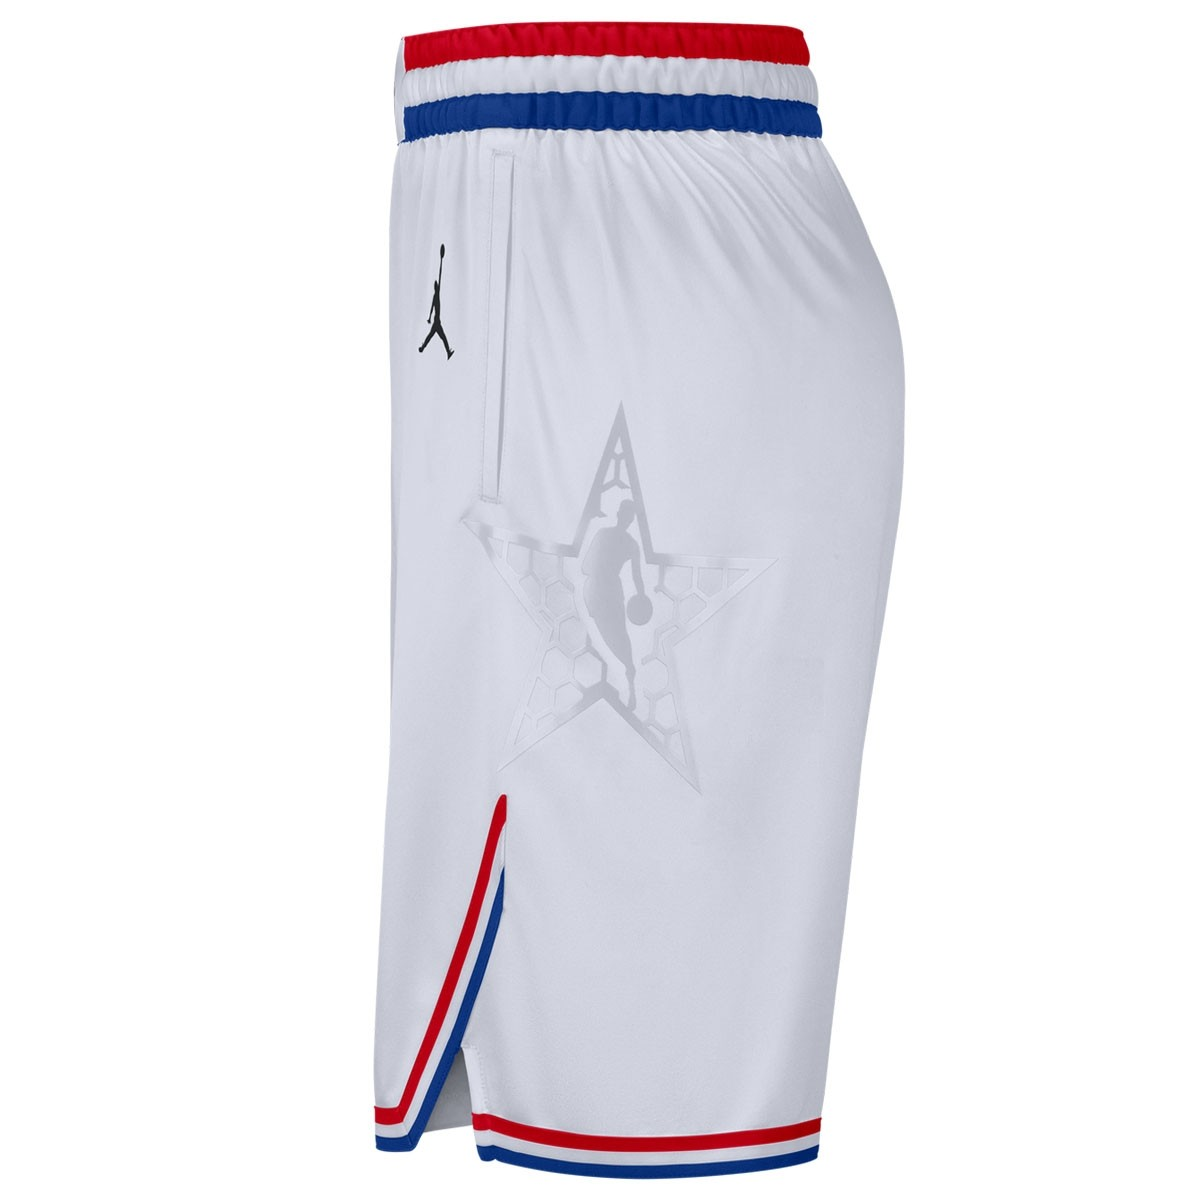 Jordan Swigman Short All-Star edition 'White' AQ7300-100